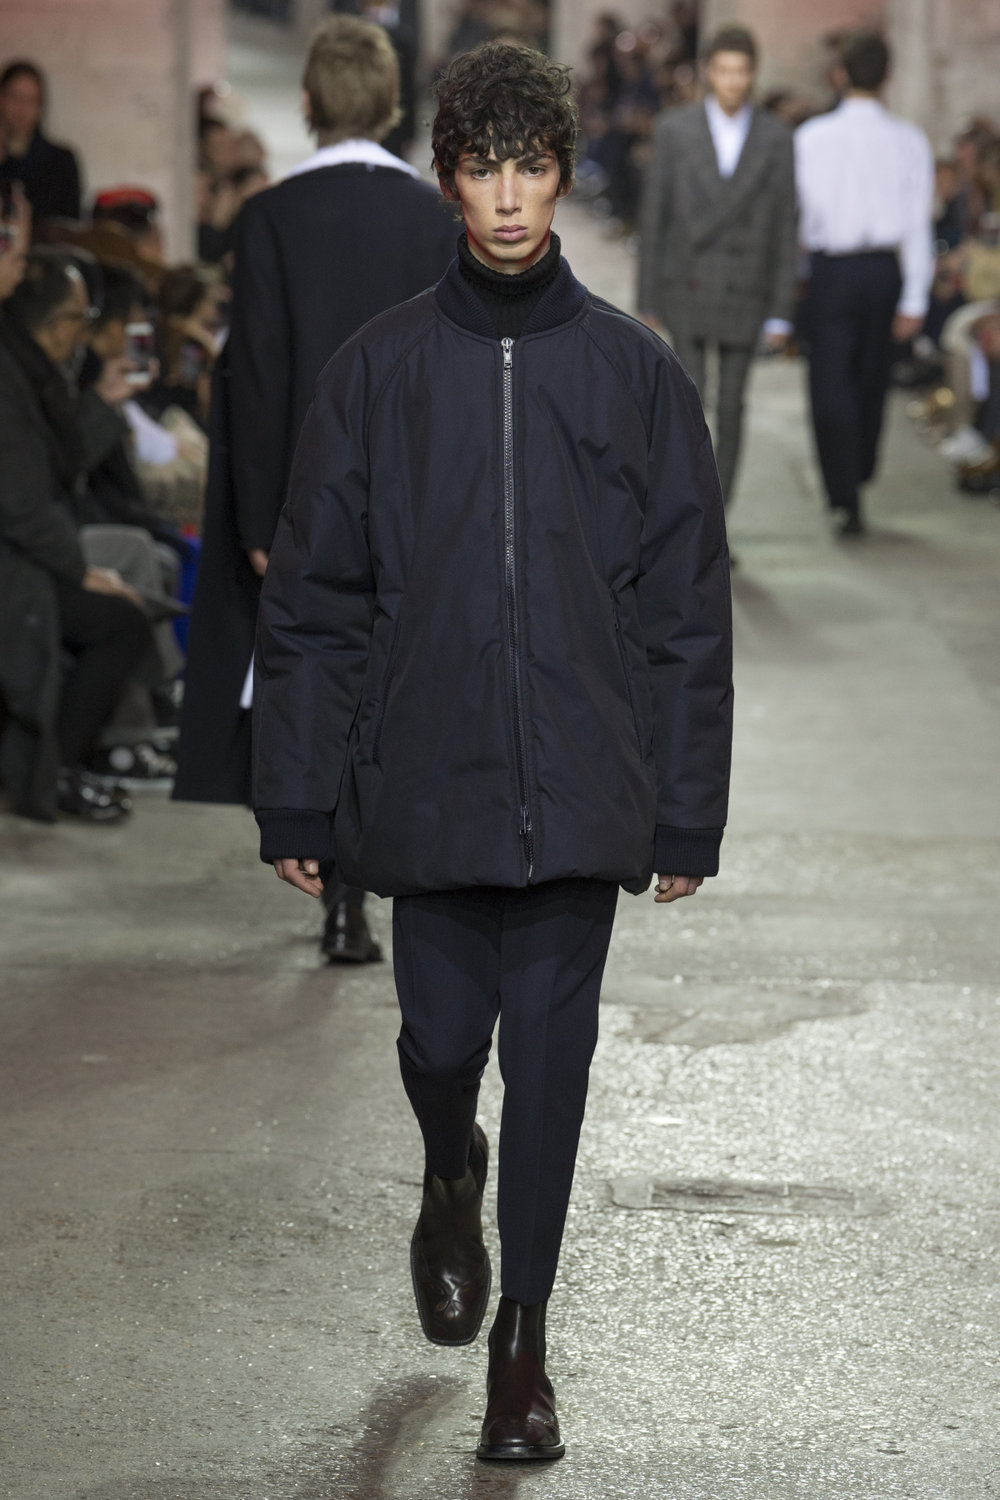 dries_van_noten_look_11_2017_aw_mens.jpeg